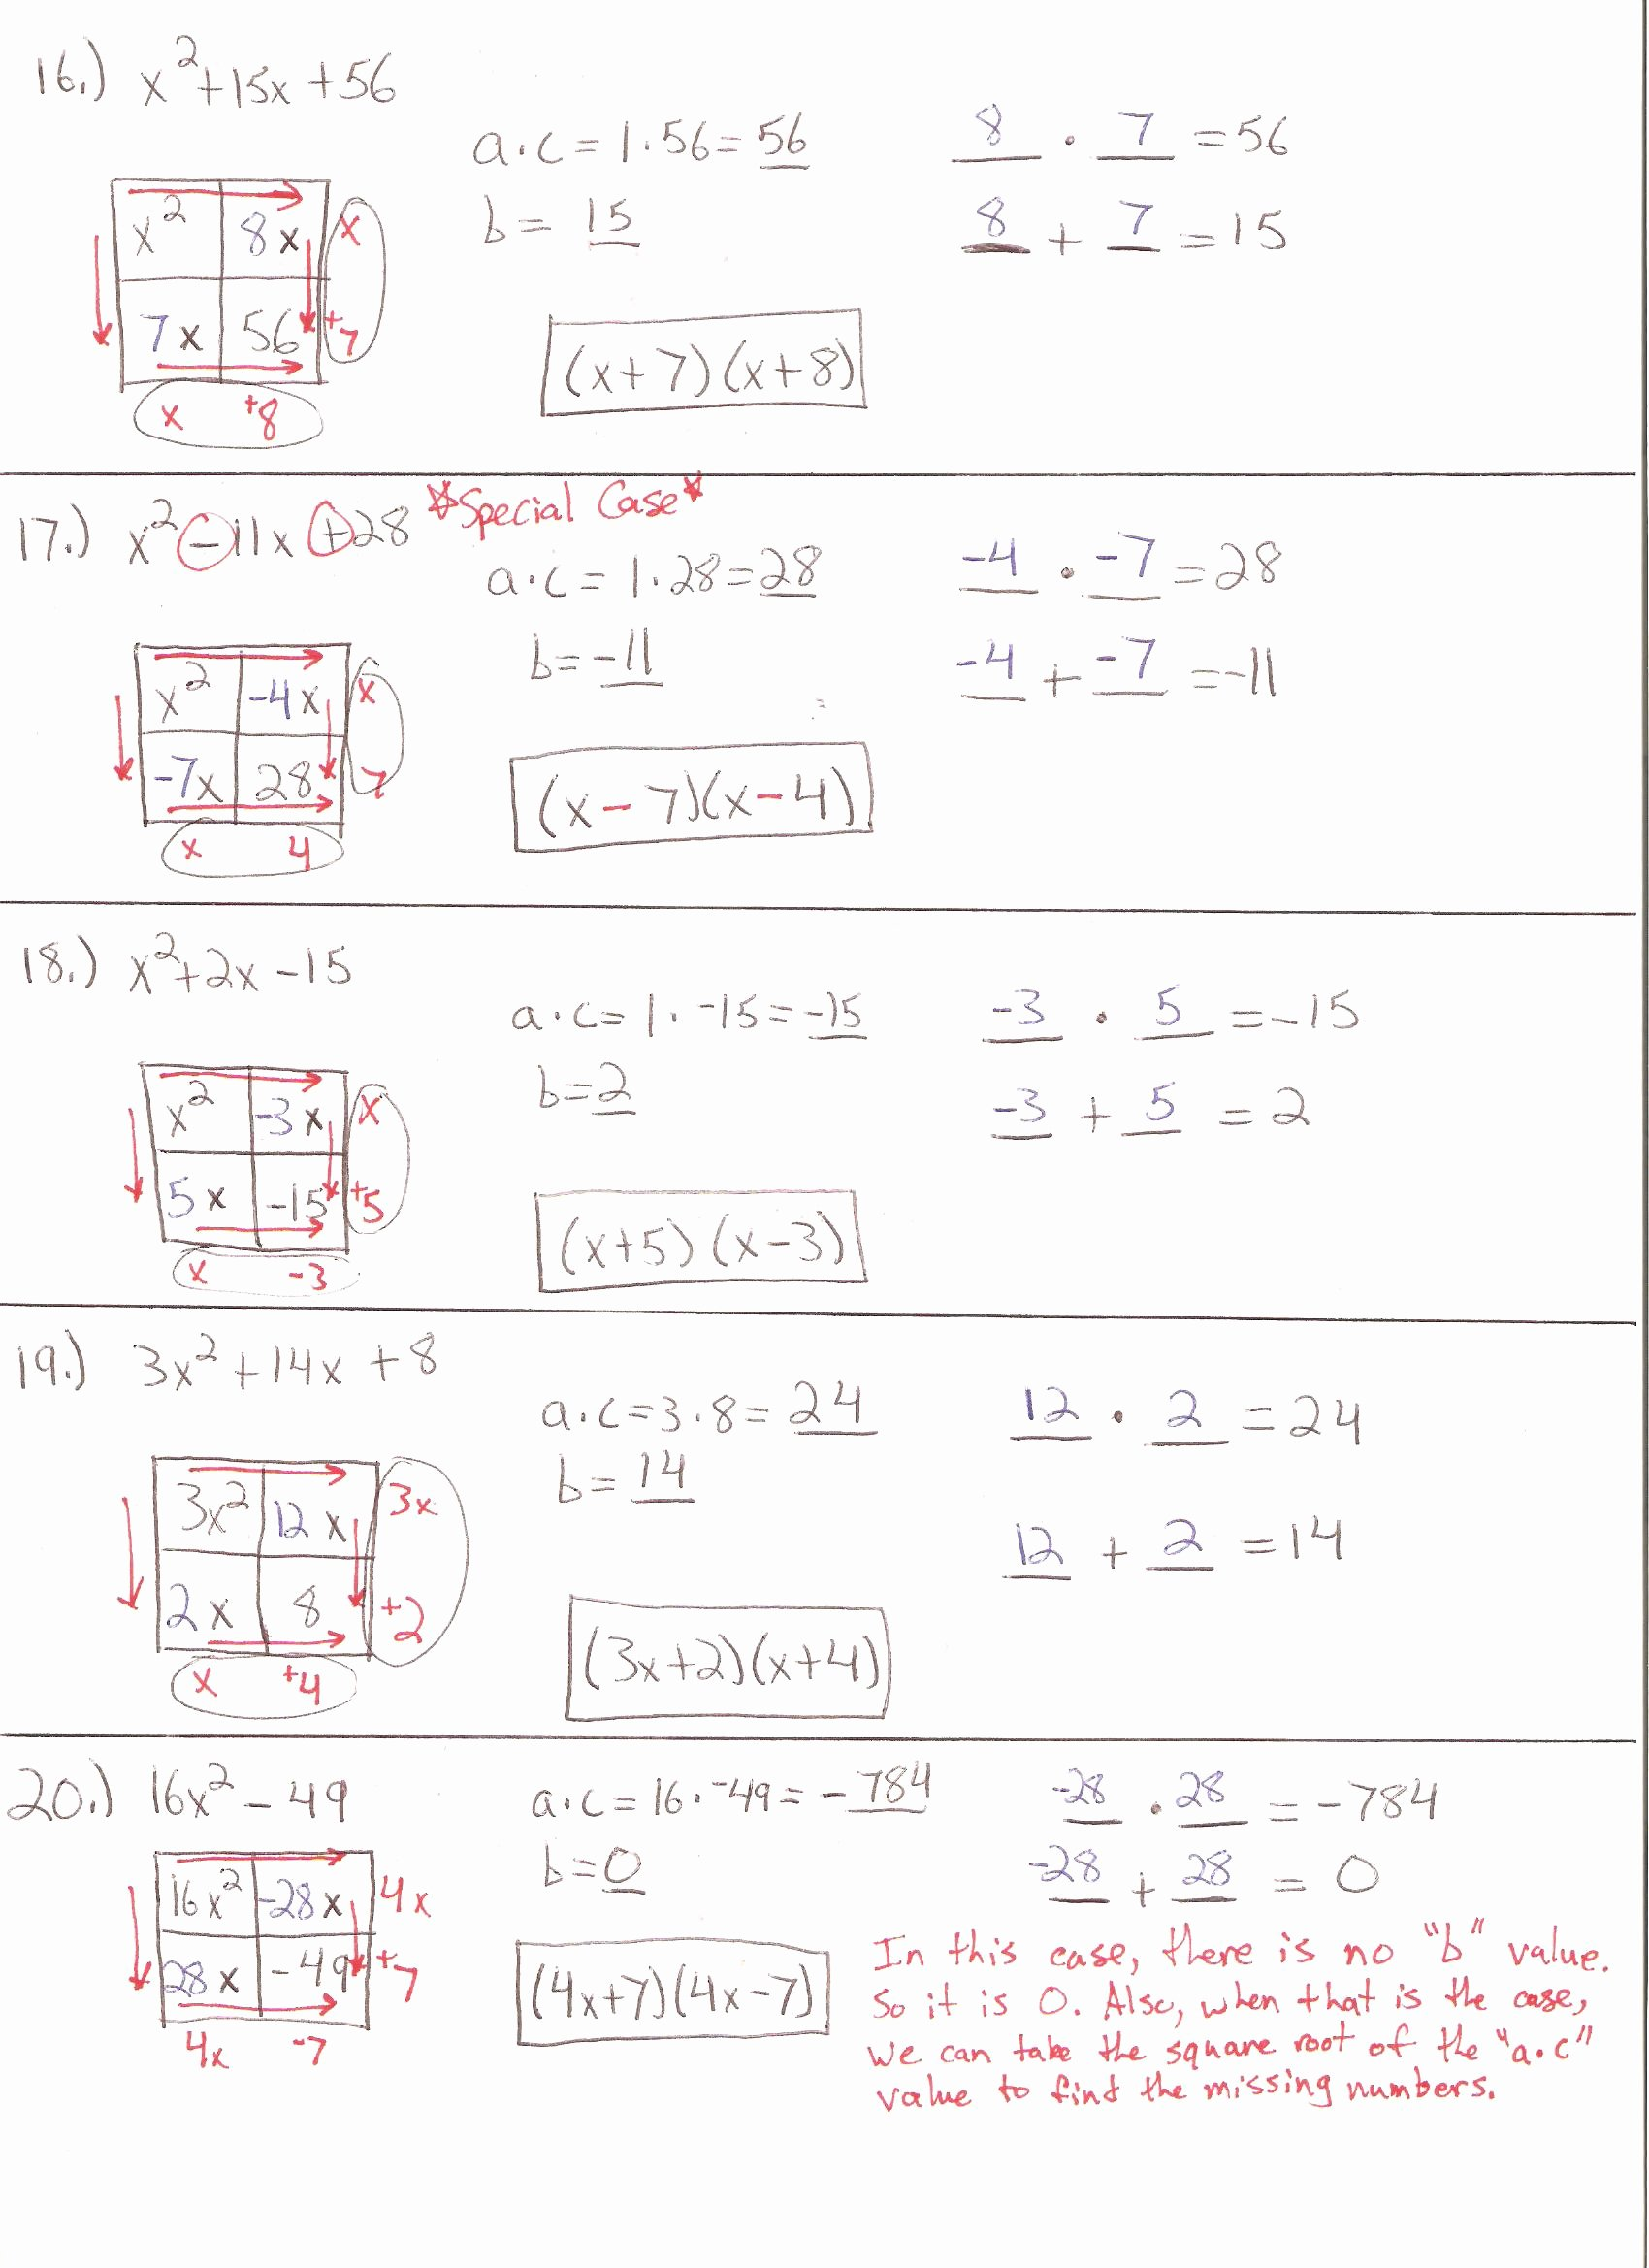 Algebra 2 Review Worksheet Fresh Mr Wood S Algebra 2 Class – Dearborn Public Schools